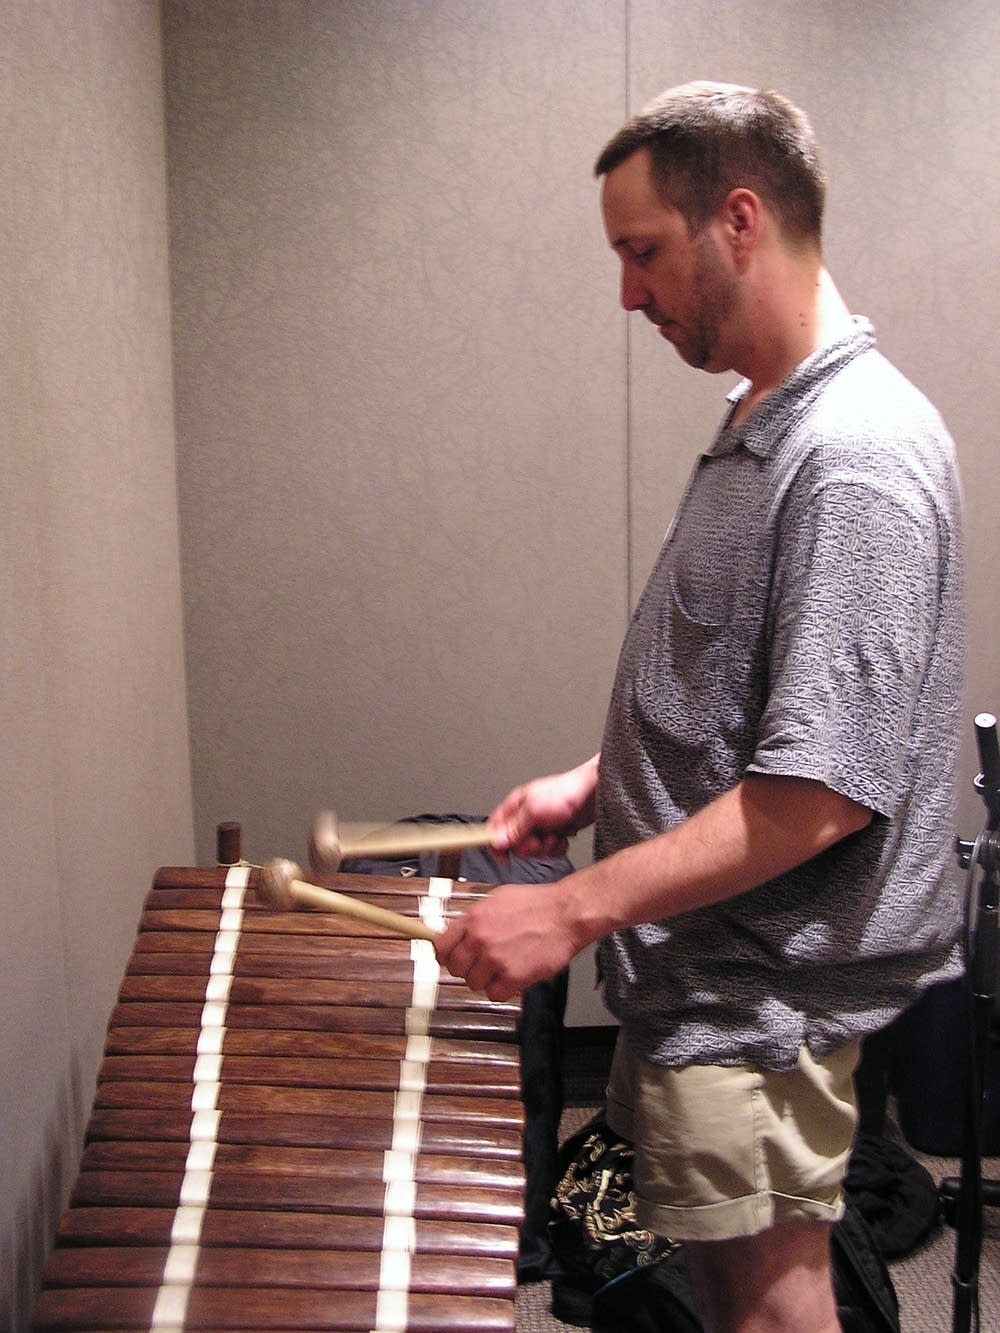 Playing a balafone